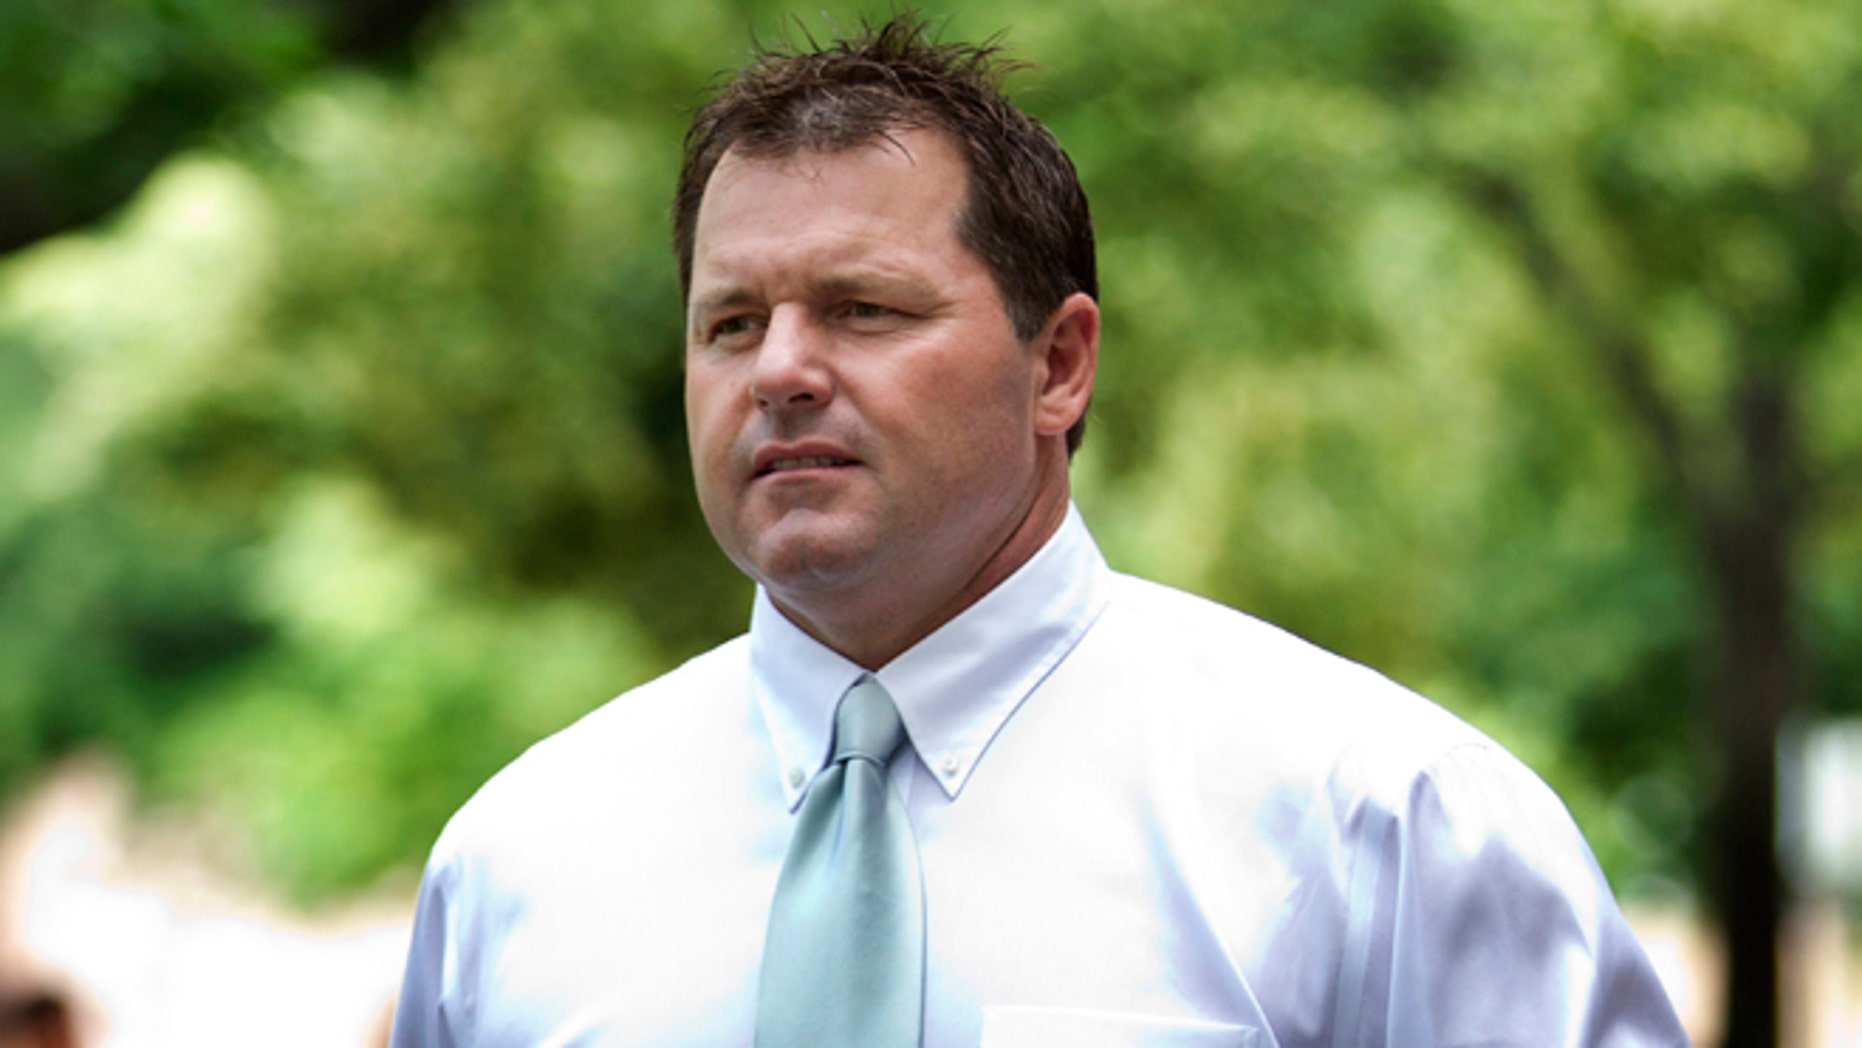 May 23, 2012: Former Major League Baseball pitcher Roger Clemens arrives at federal court in Washington.